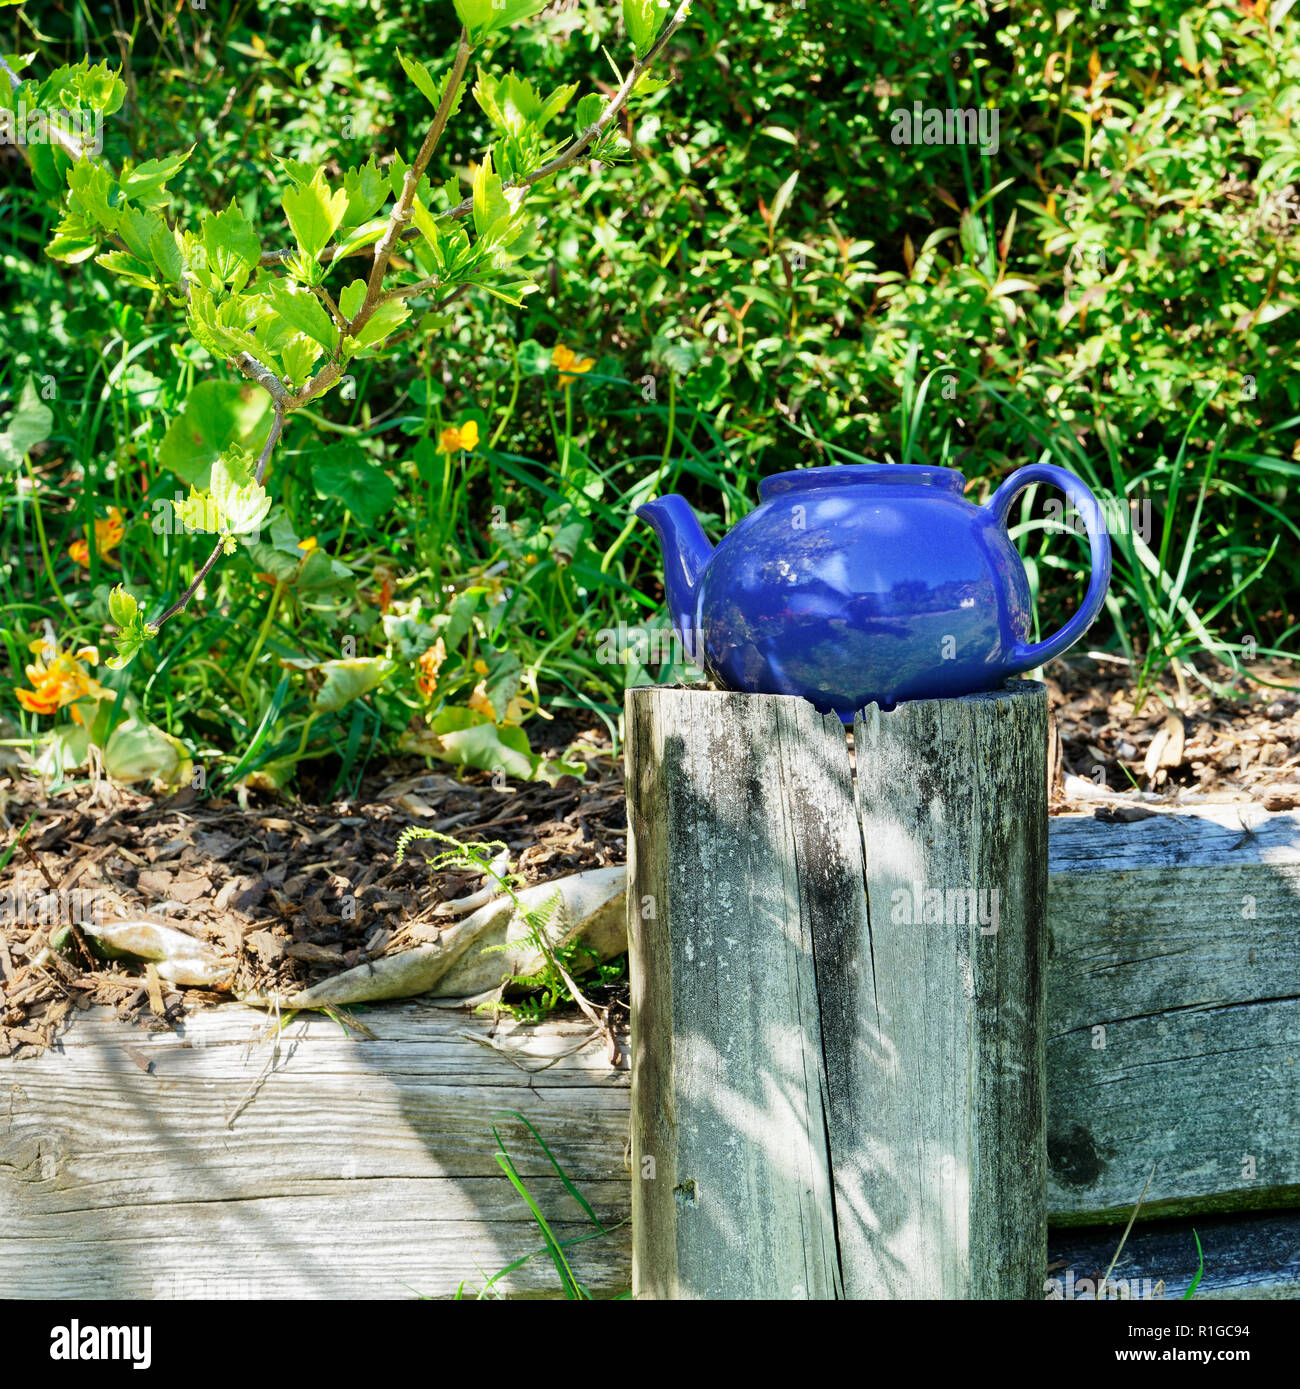 Blue teapot on a fence post in a flower garden - Stock Image